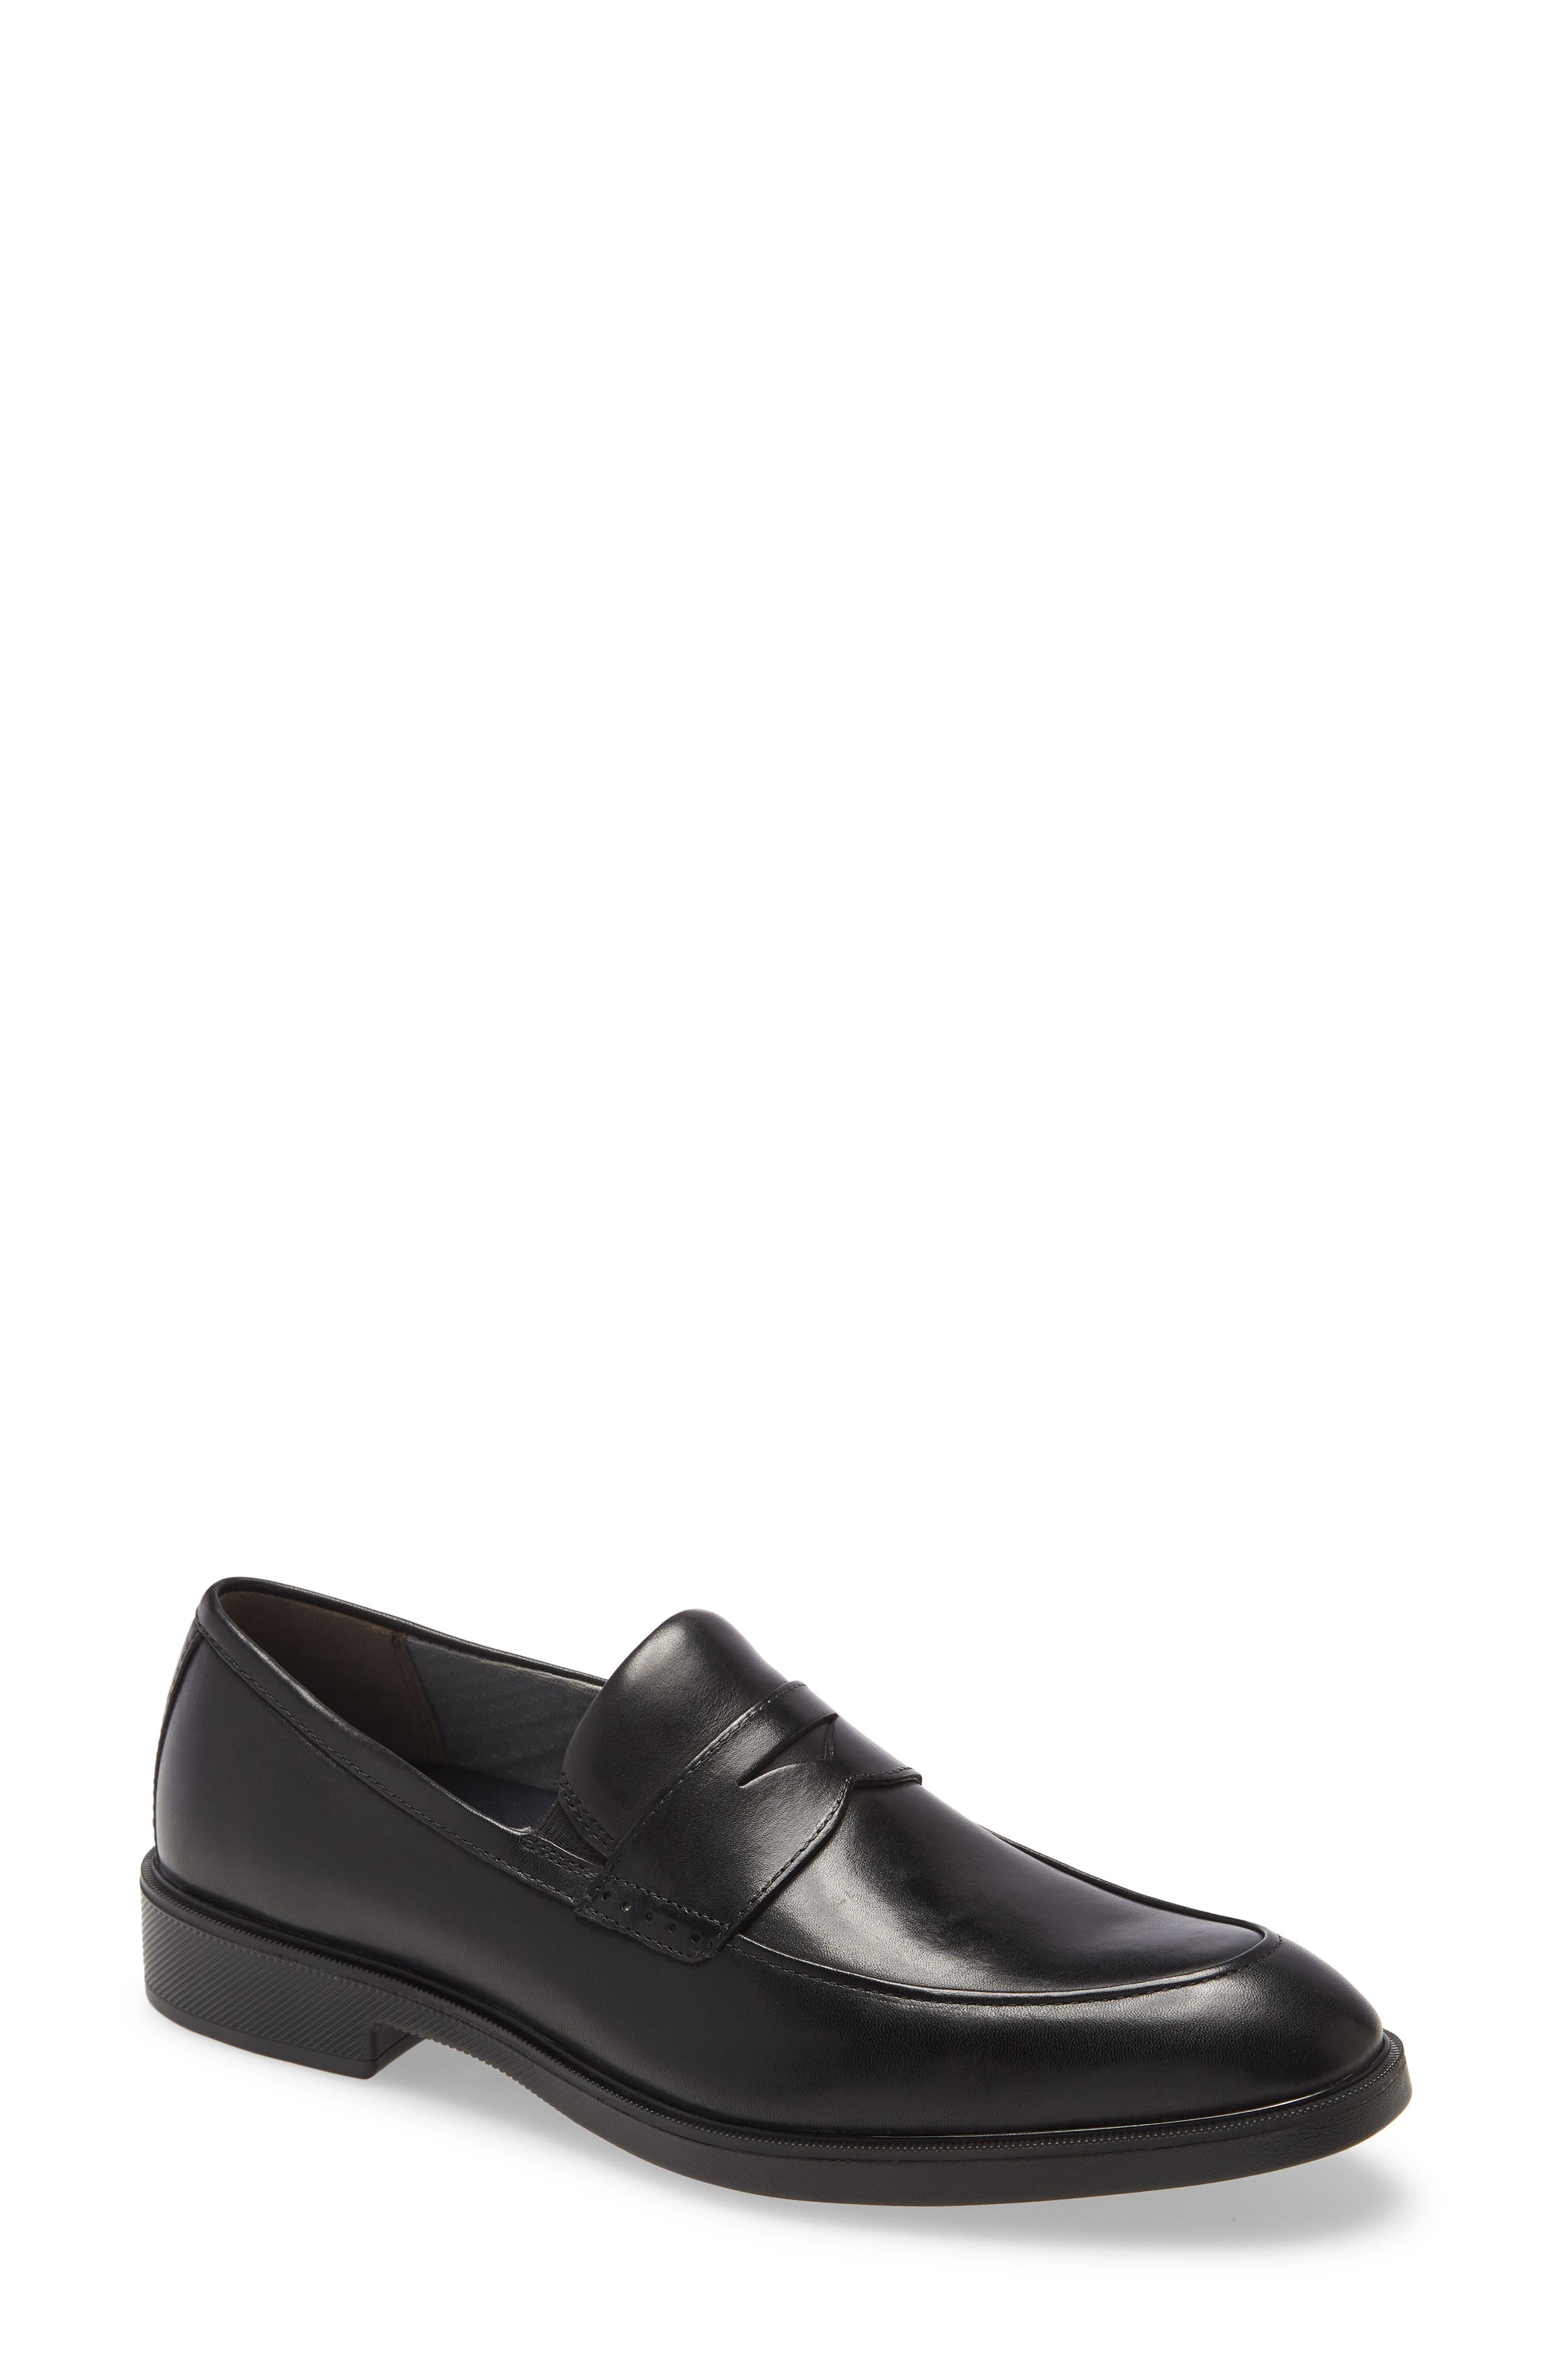 Xc4 Maddox Waterproof Penny Loafer